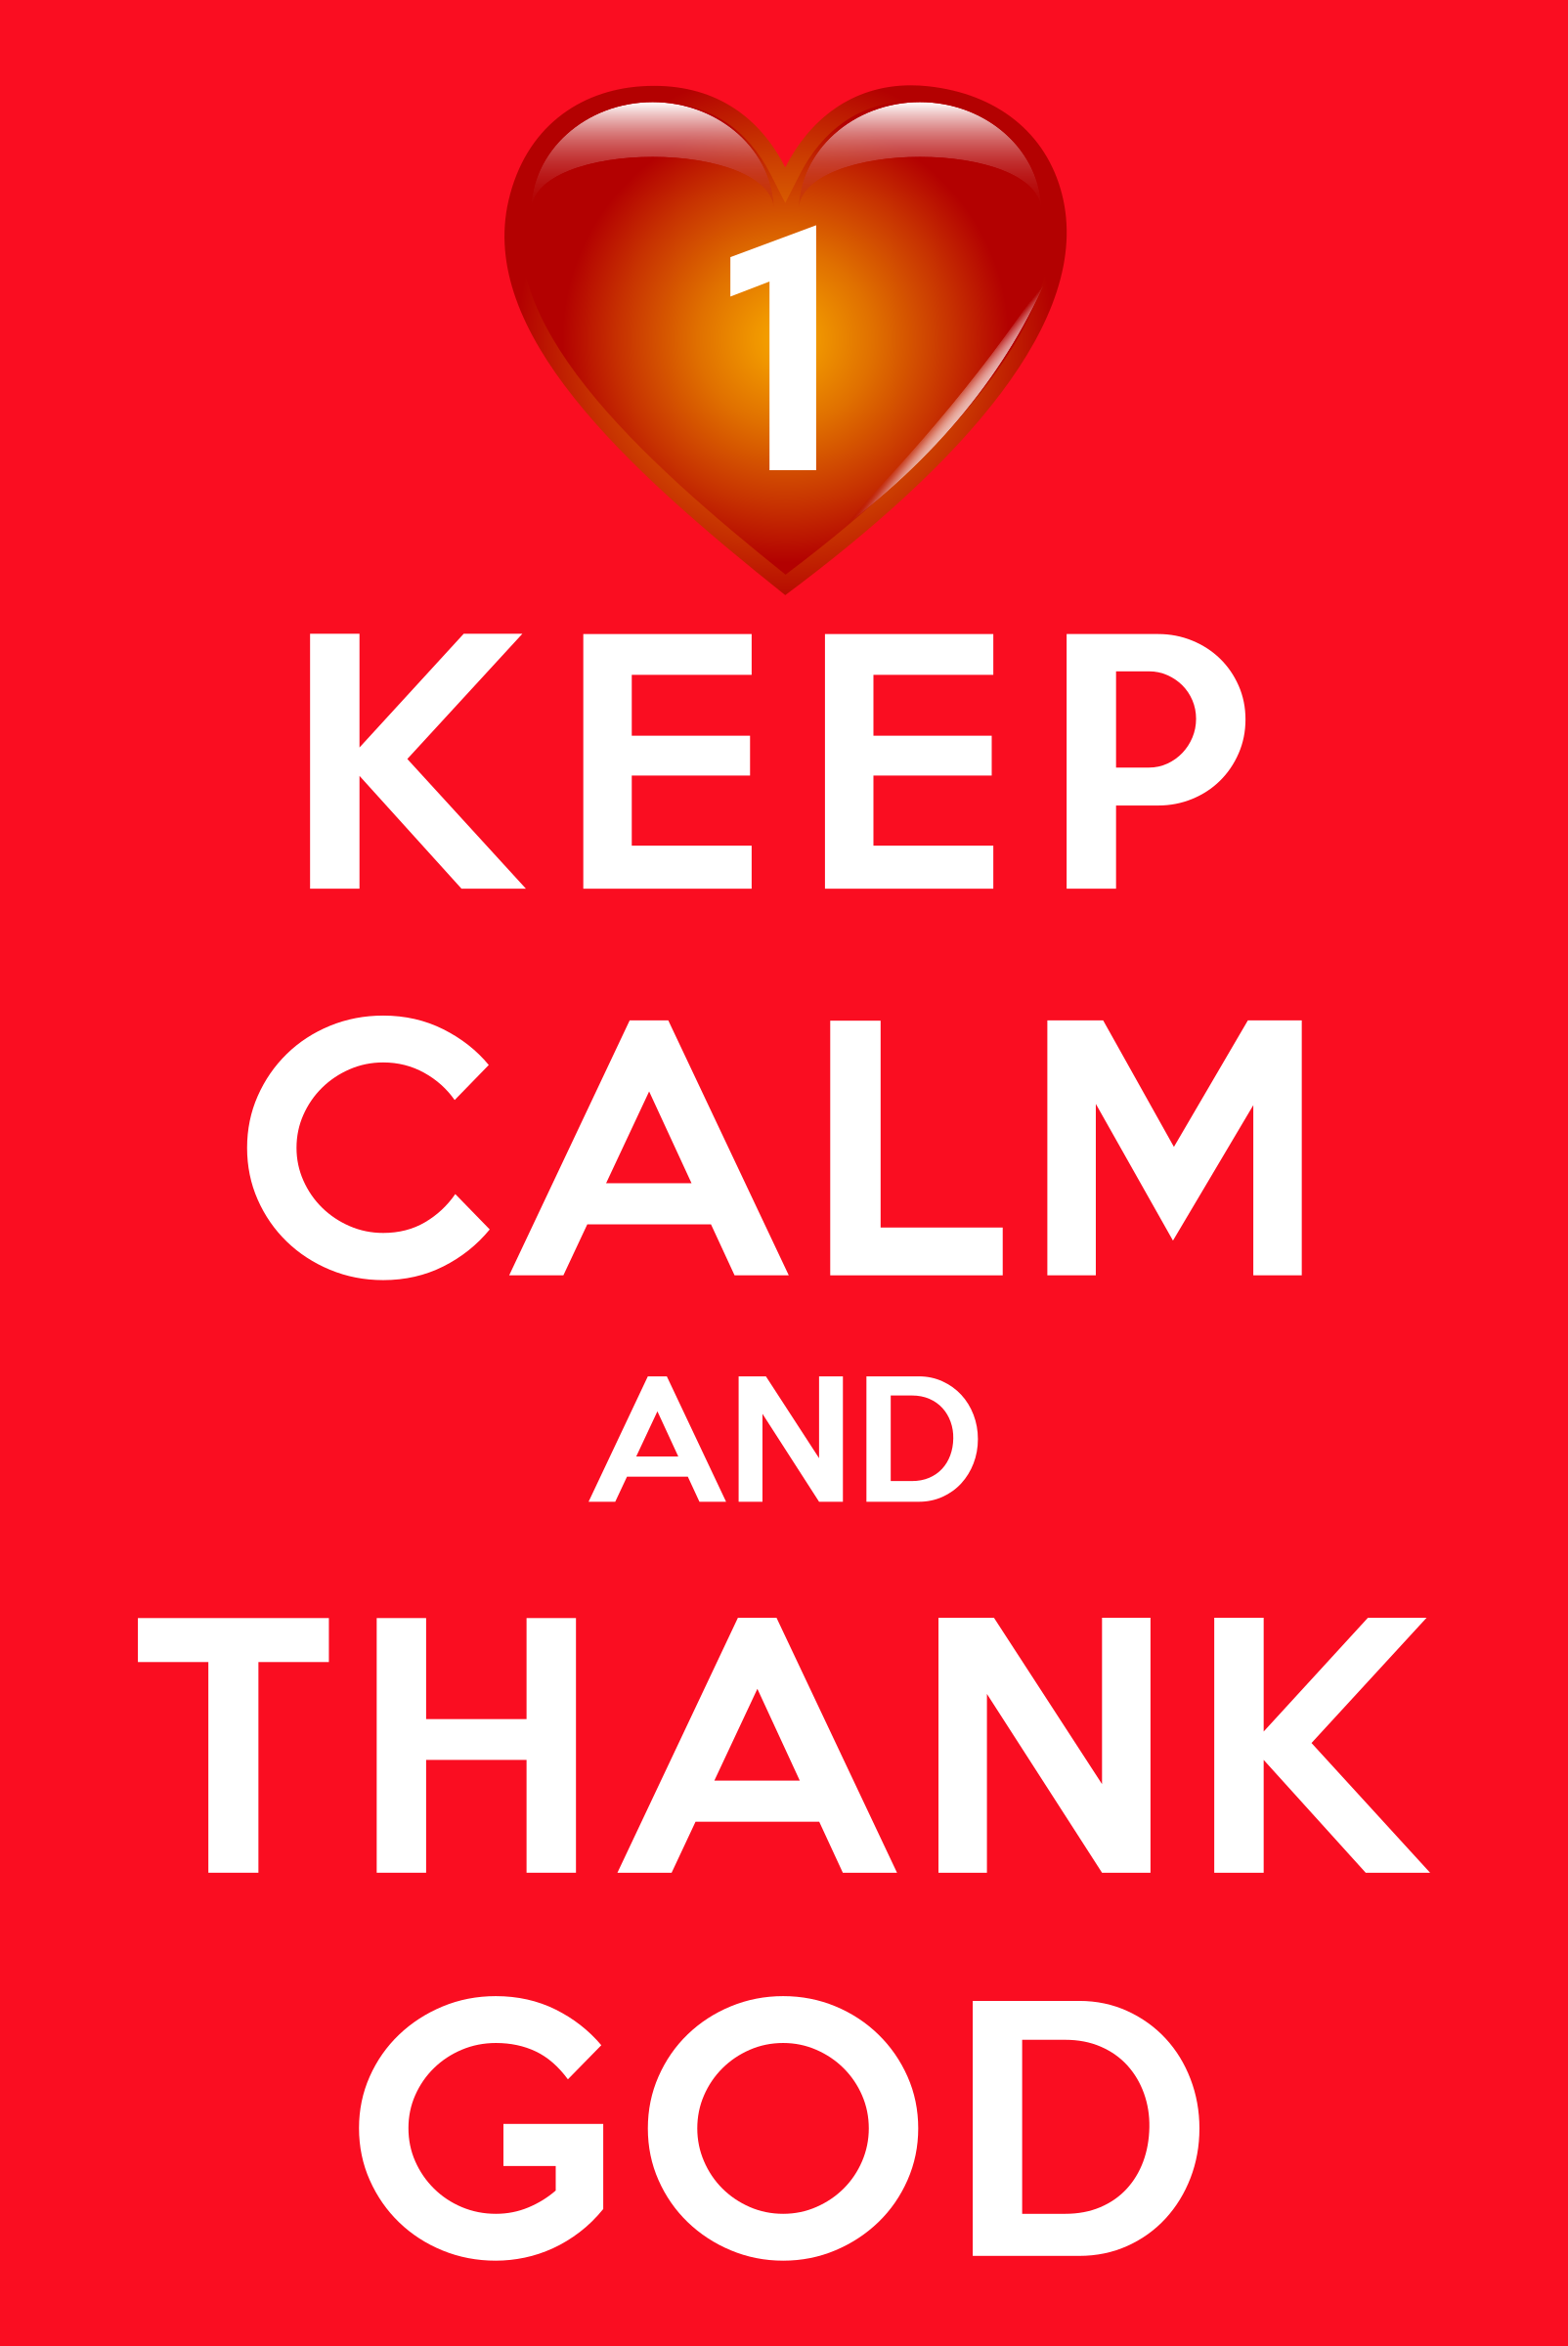 Keep Calm And Thank God by GDJ